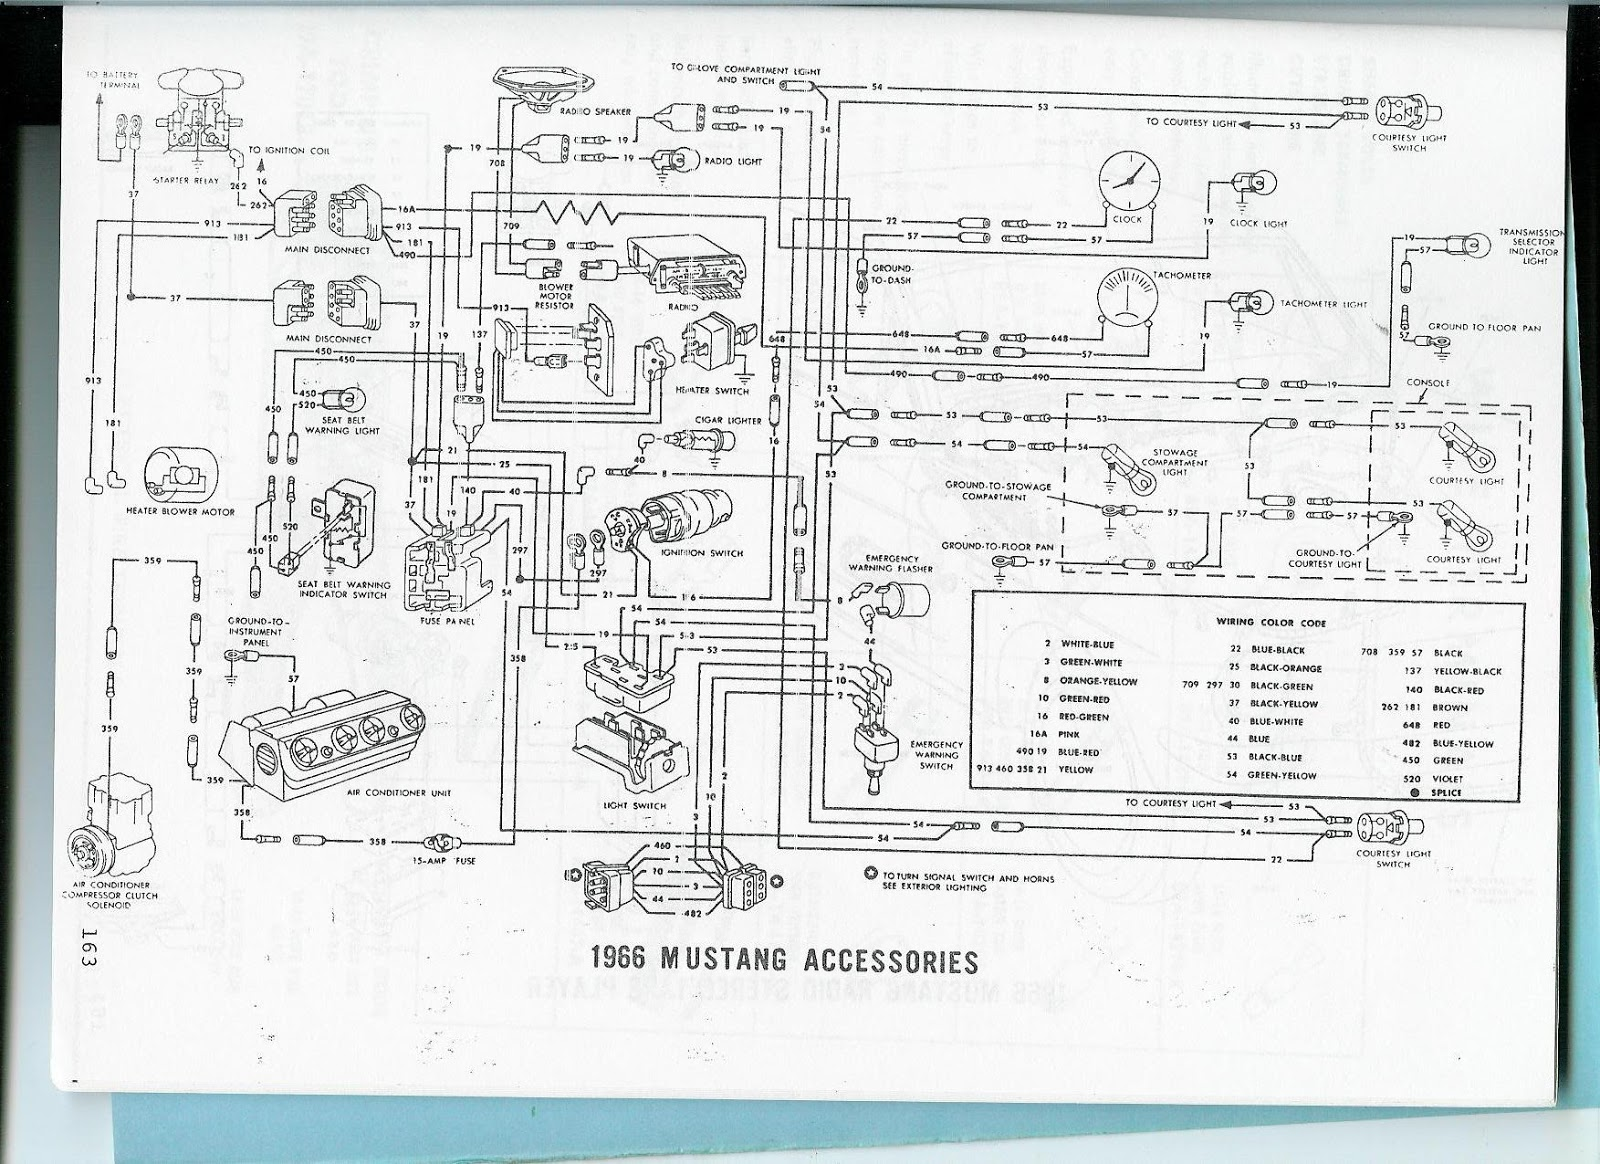 66 mustang wiring diagram schematic 66 mustang fuse diagram the care and feeding of ponies: 1966 mustang wiring diagrams